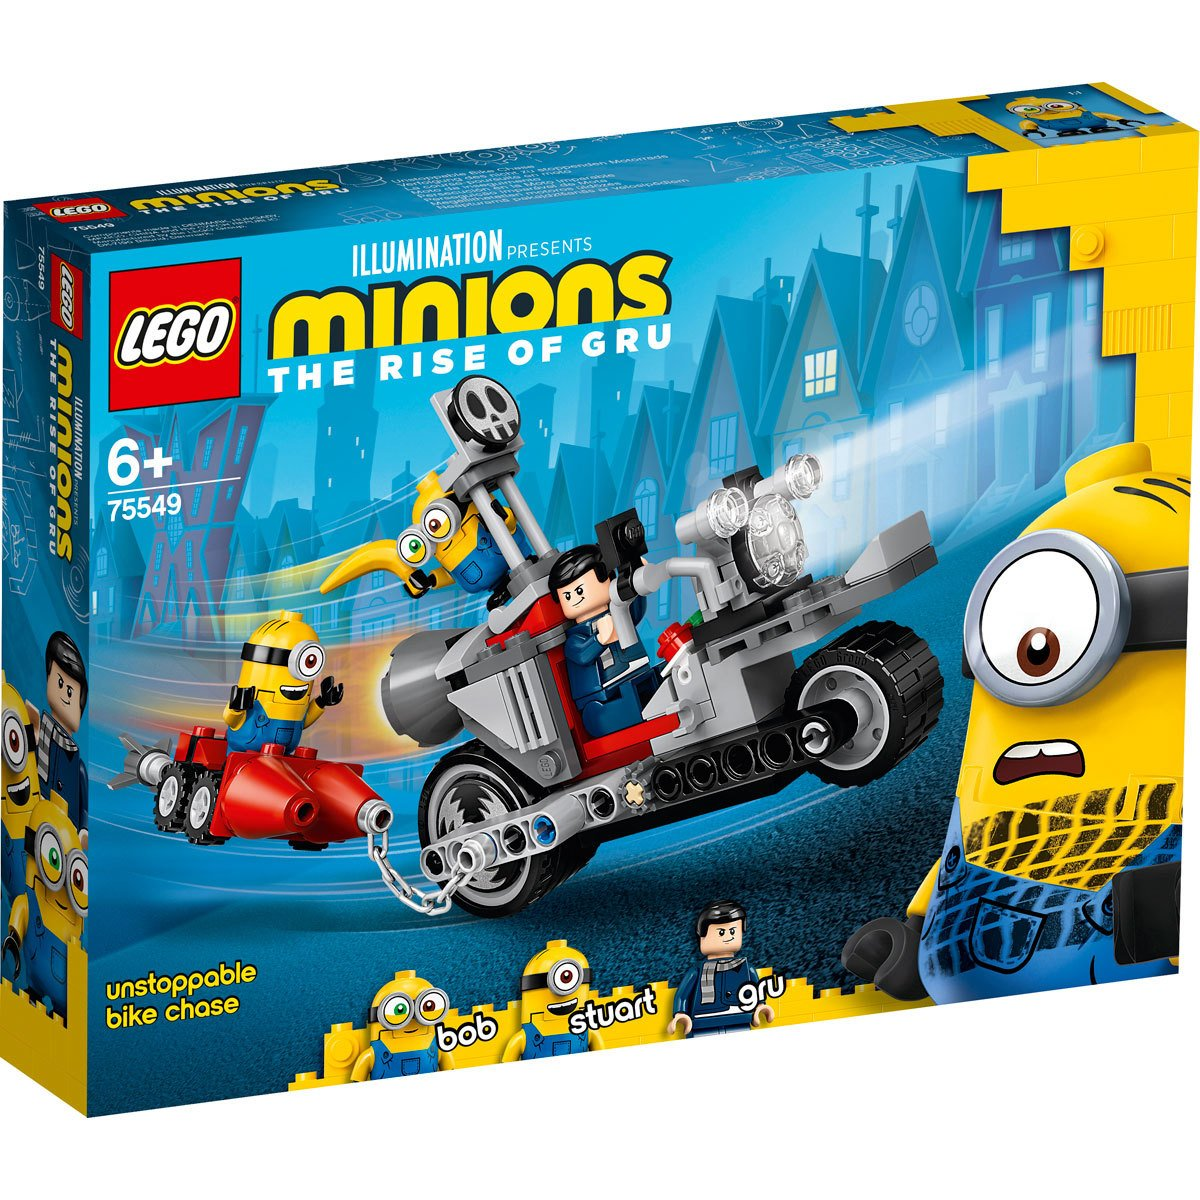 LEGO Minions The Rise of Gru Unstoppable Bike Chase - 75549   The Entertainer